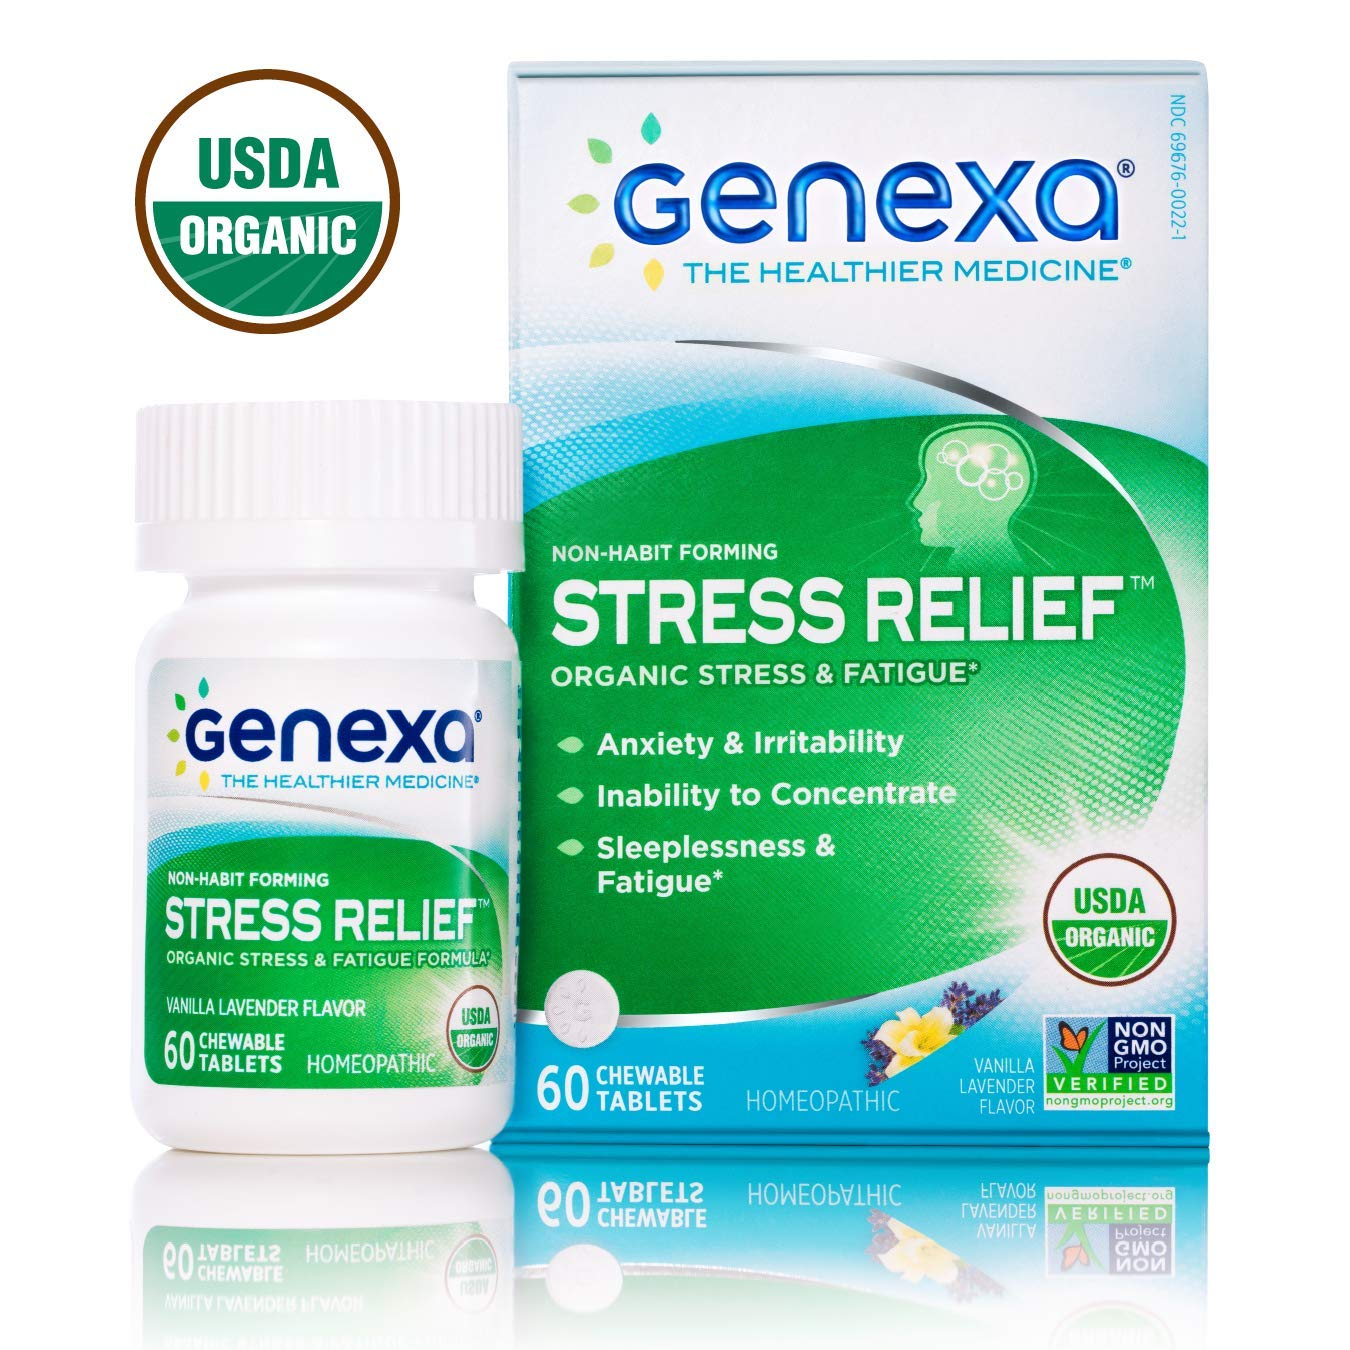 Genexa Stress Relief - 60 Tablets | Certified Organic & Non-GMO, Physician Formulated, Homeopathic | Stress & Fatigue Remedy by Genexa